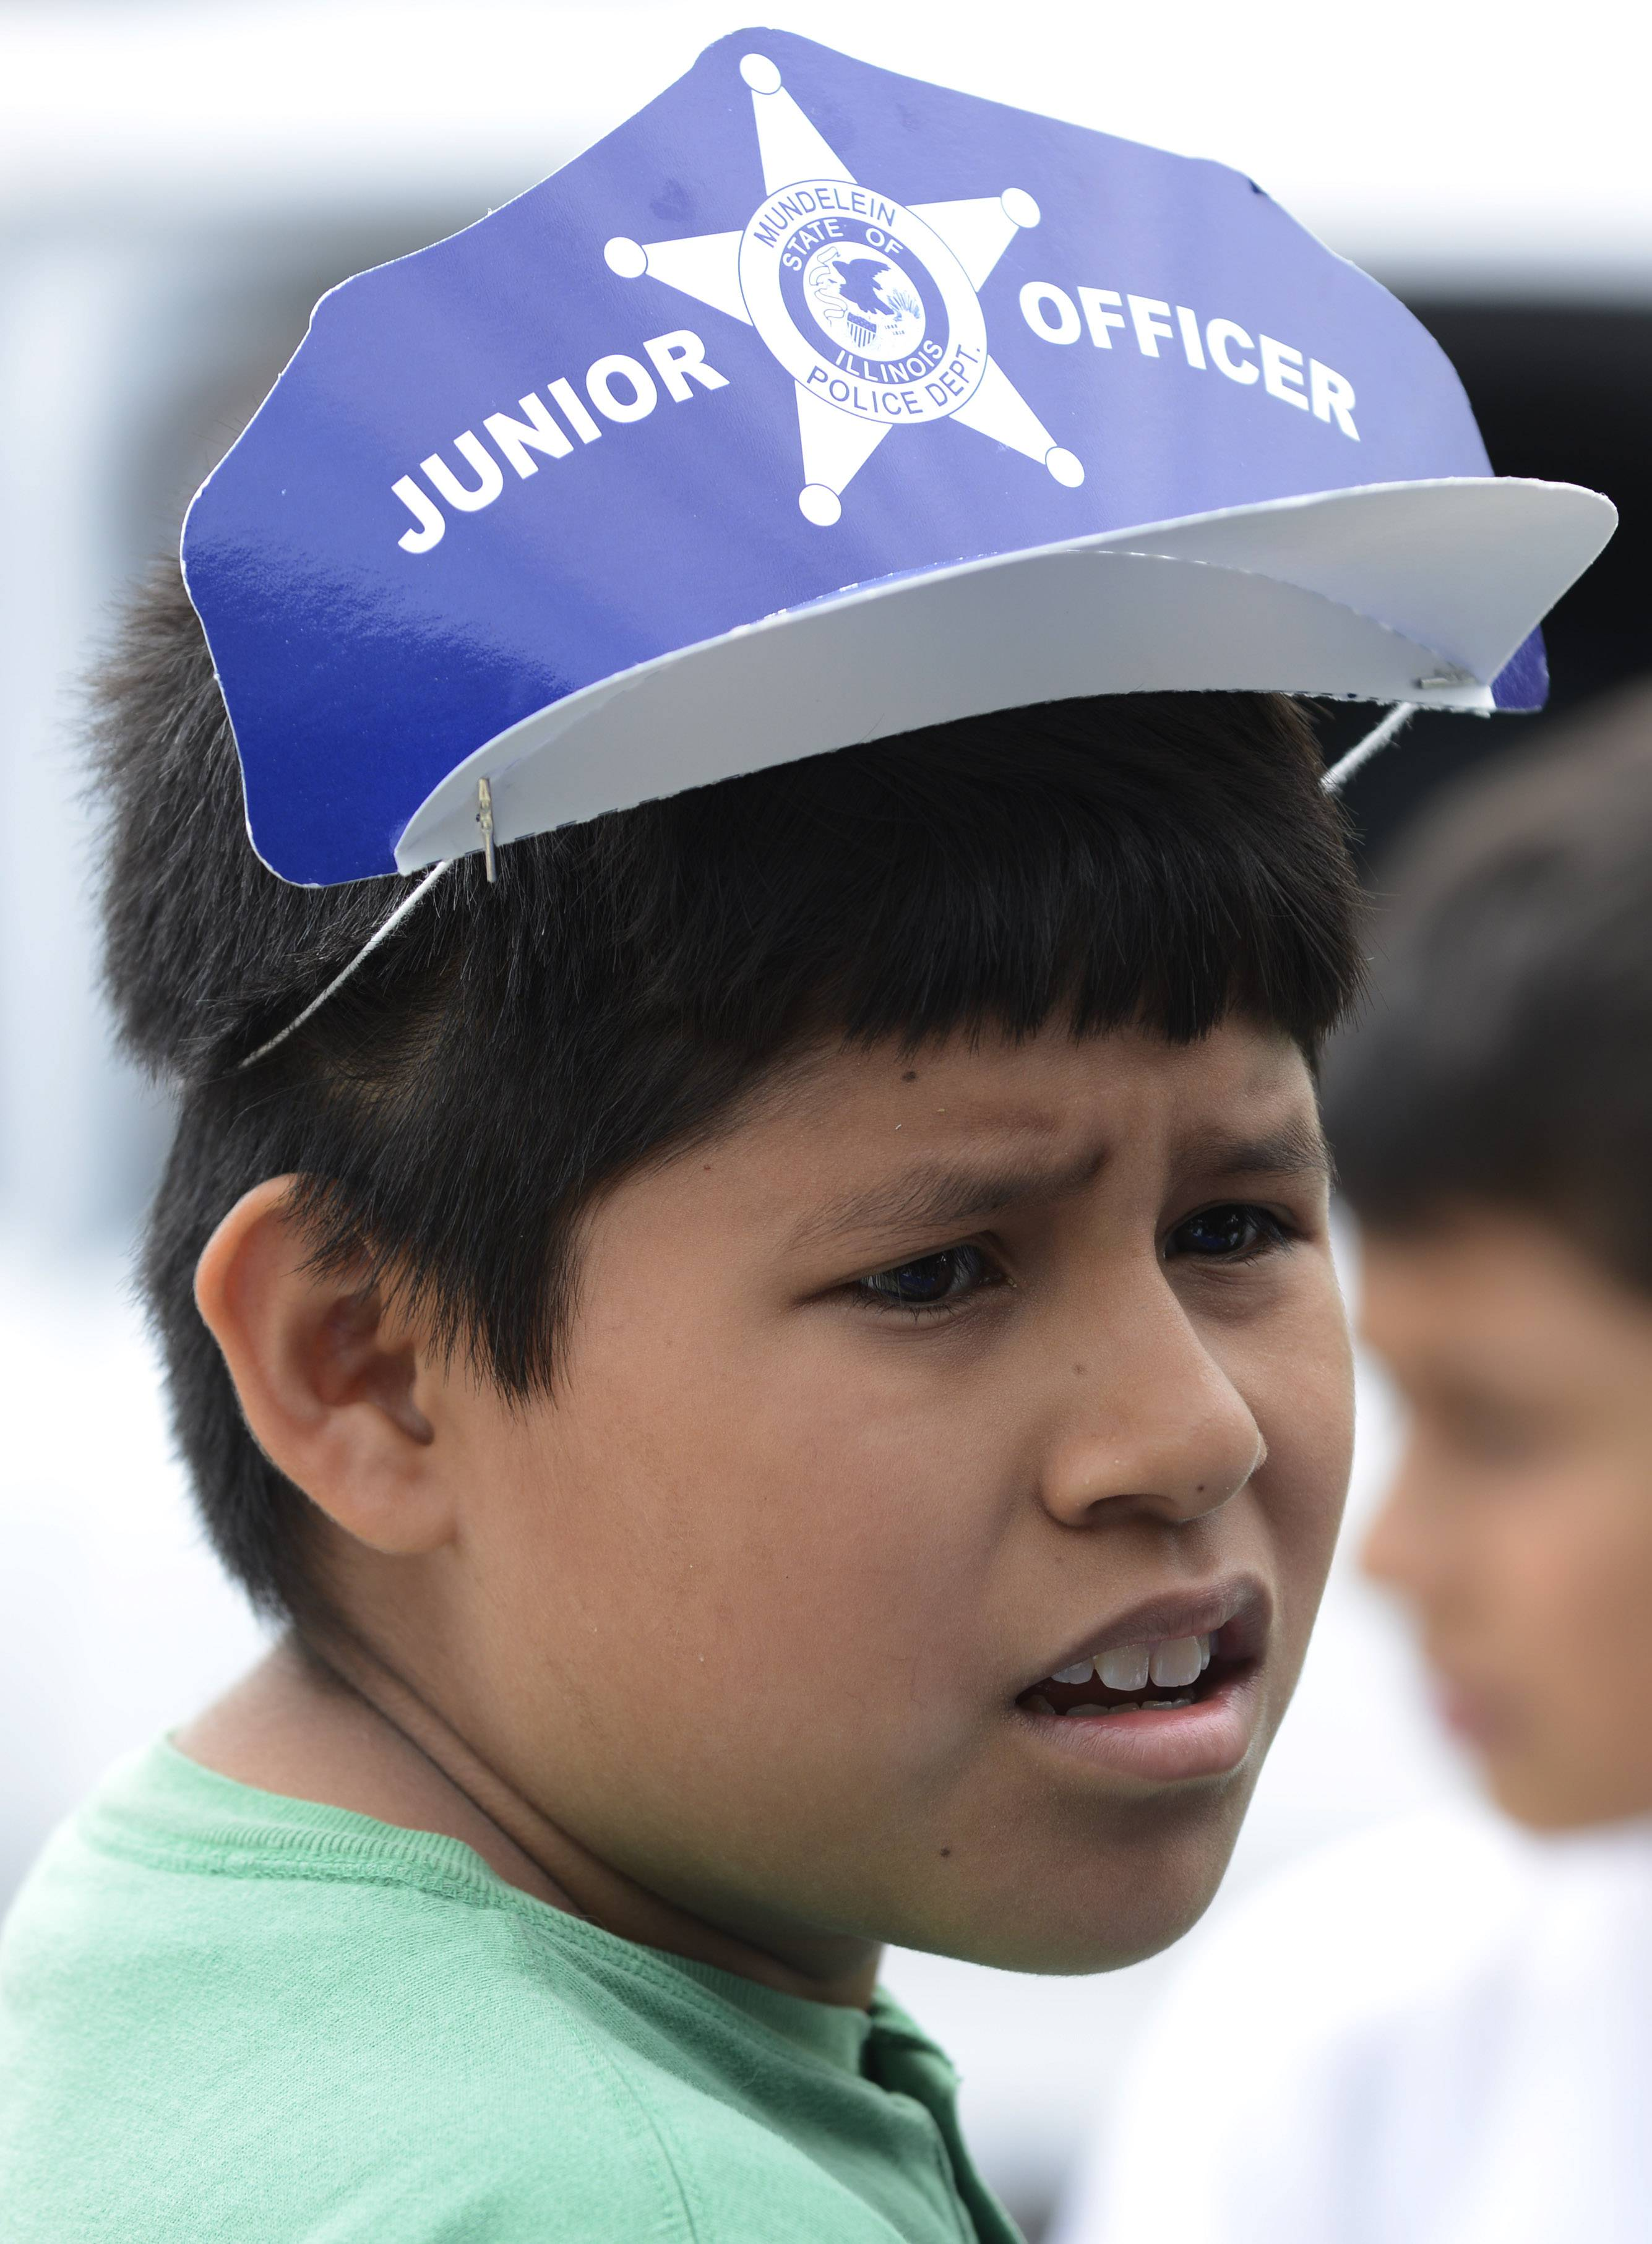 Oswaldo Rosales, 12, of Mundelein wears a cap from the police department Saturday during the third day of Mundelein Community Days.